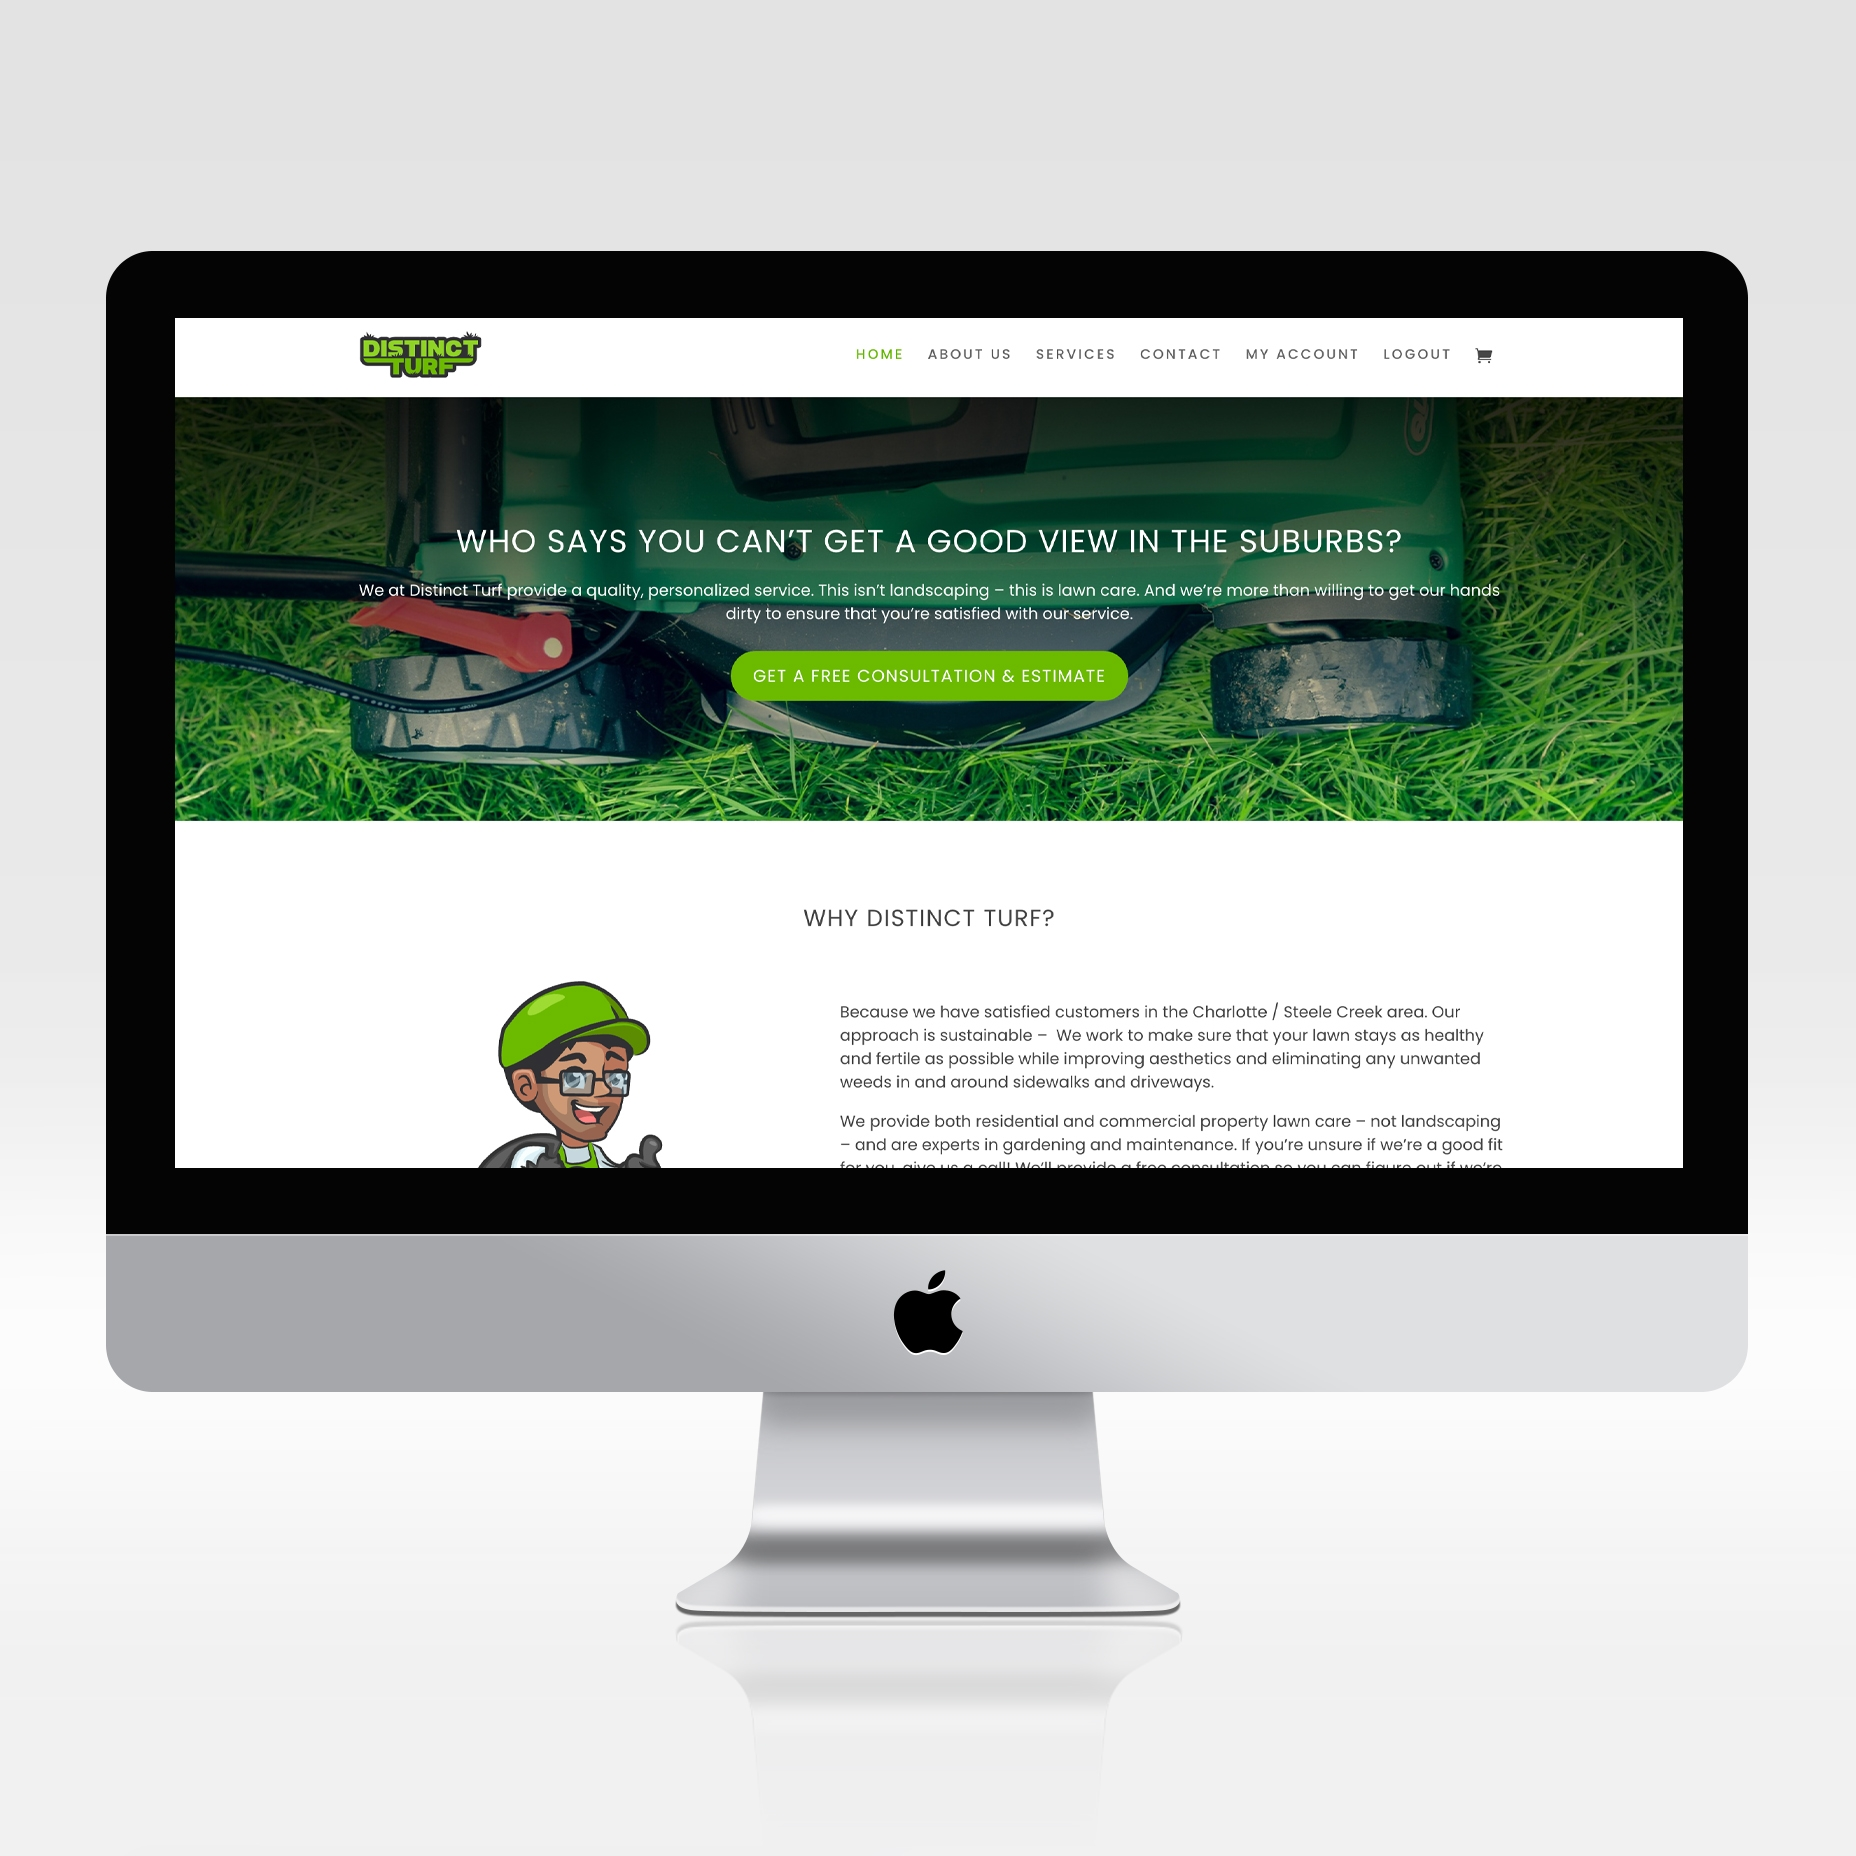 Logo mascot and web design done for a lawn care business